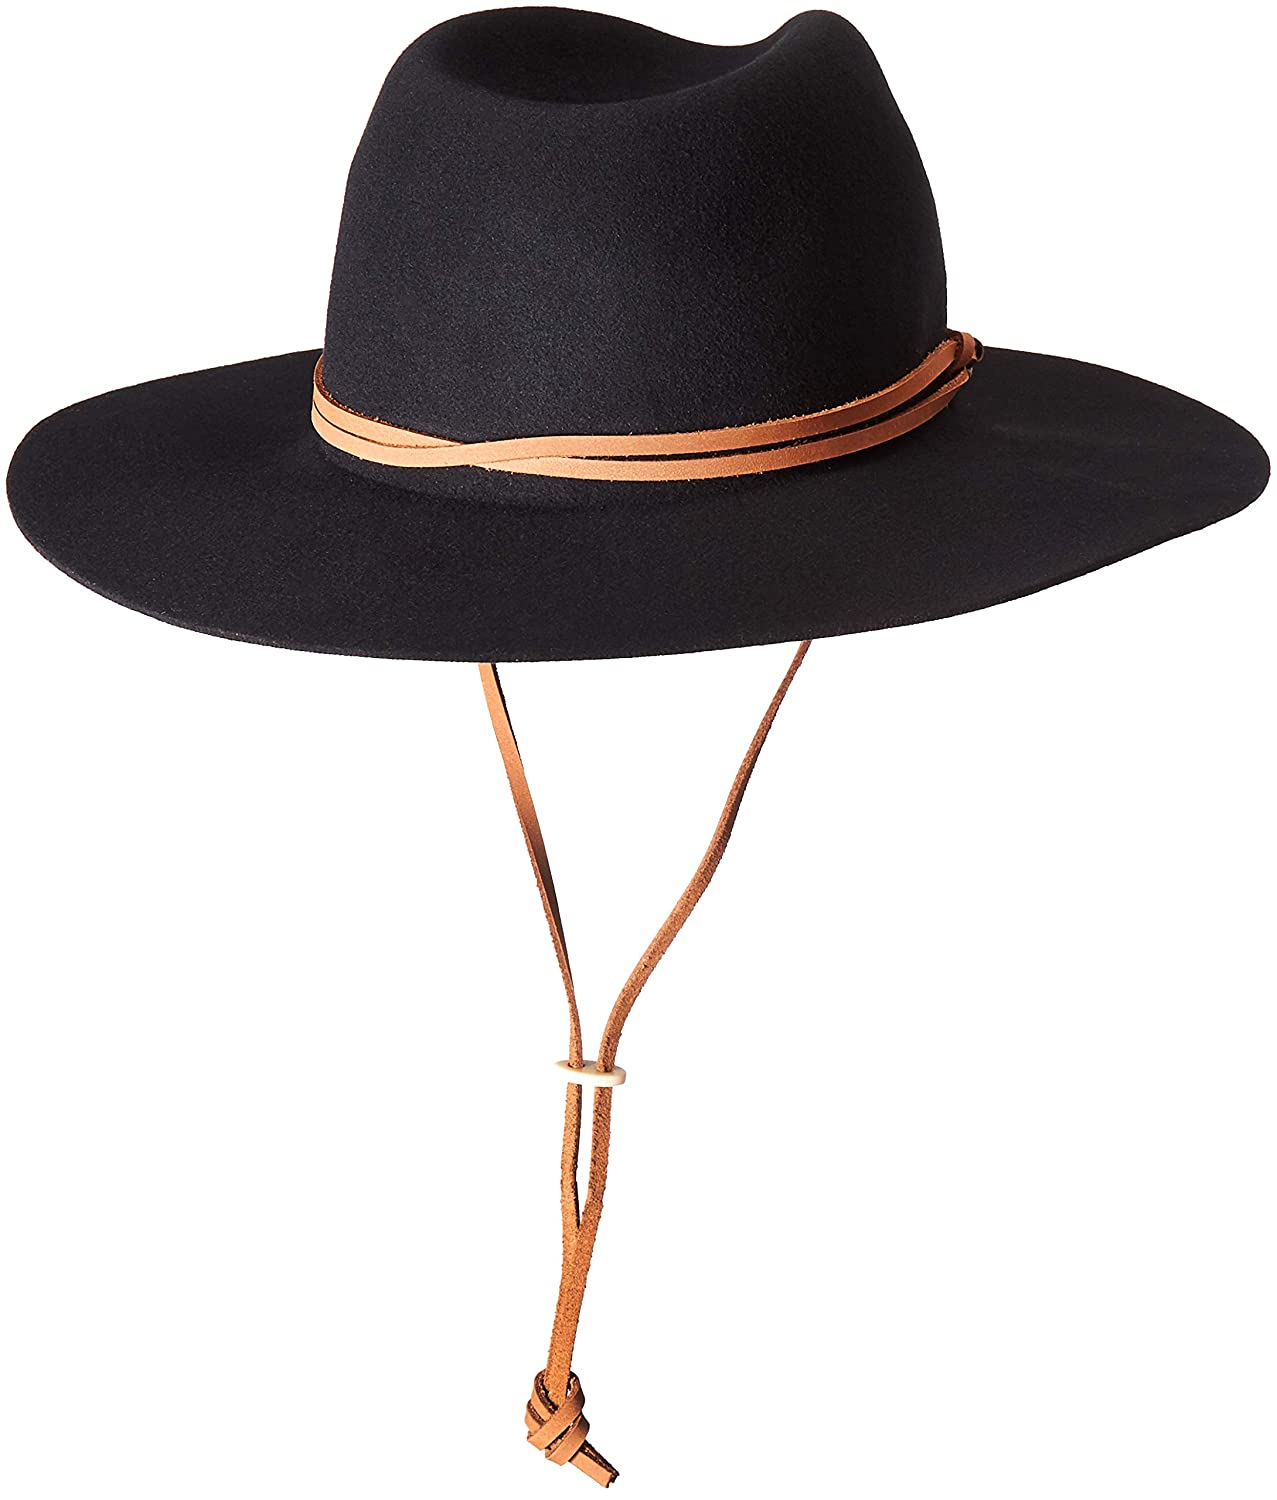 Pantropic Mens Creekside Litefelt Fedora Trilby Hat